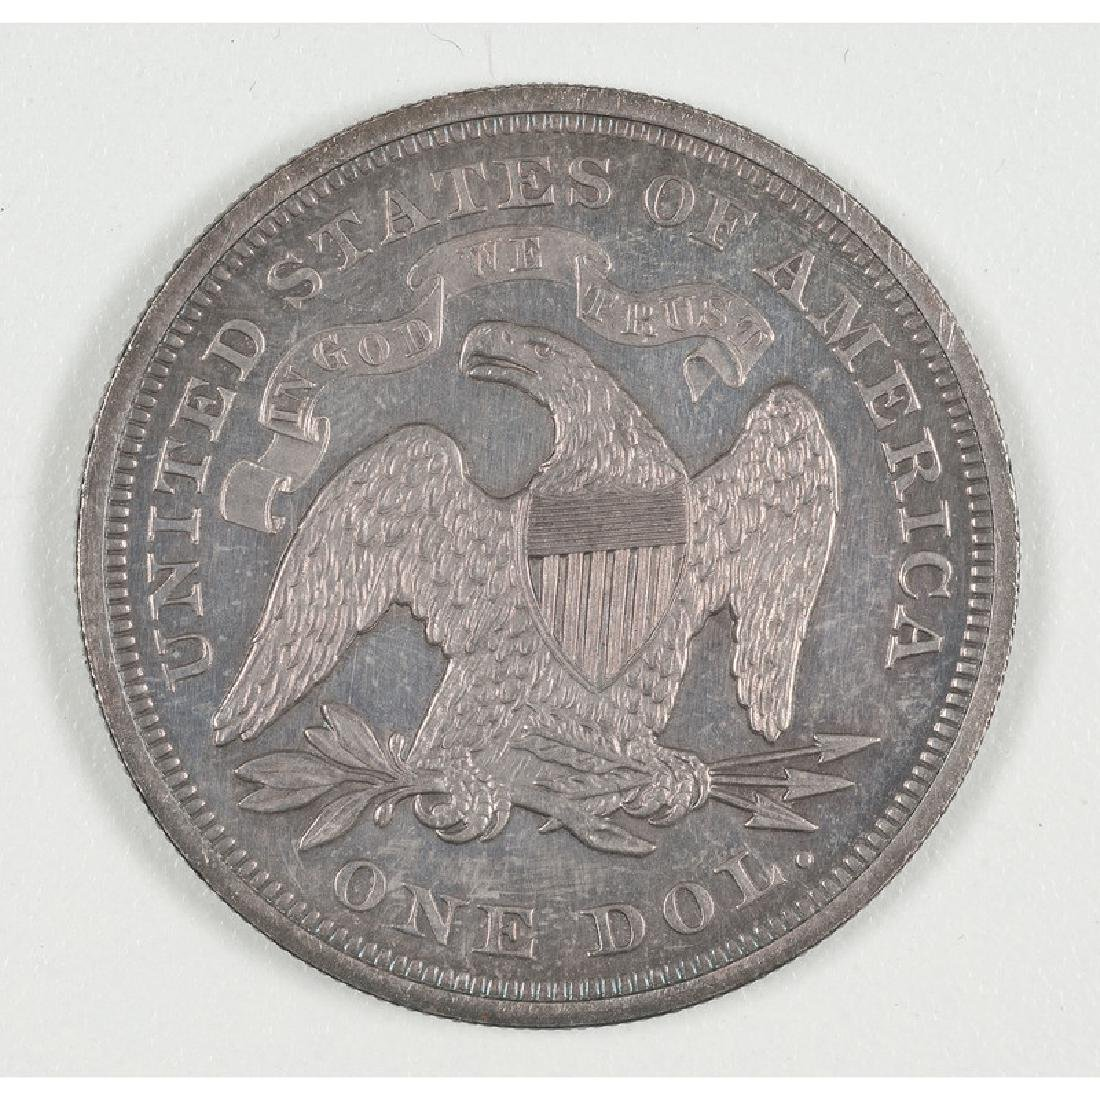 United States Liberty Seated Silver Dollar 1867 - 2